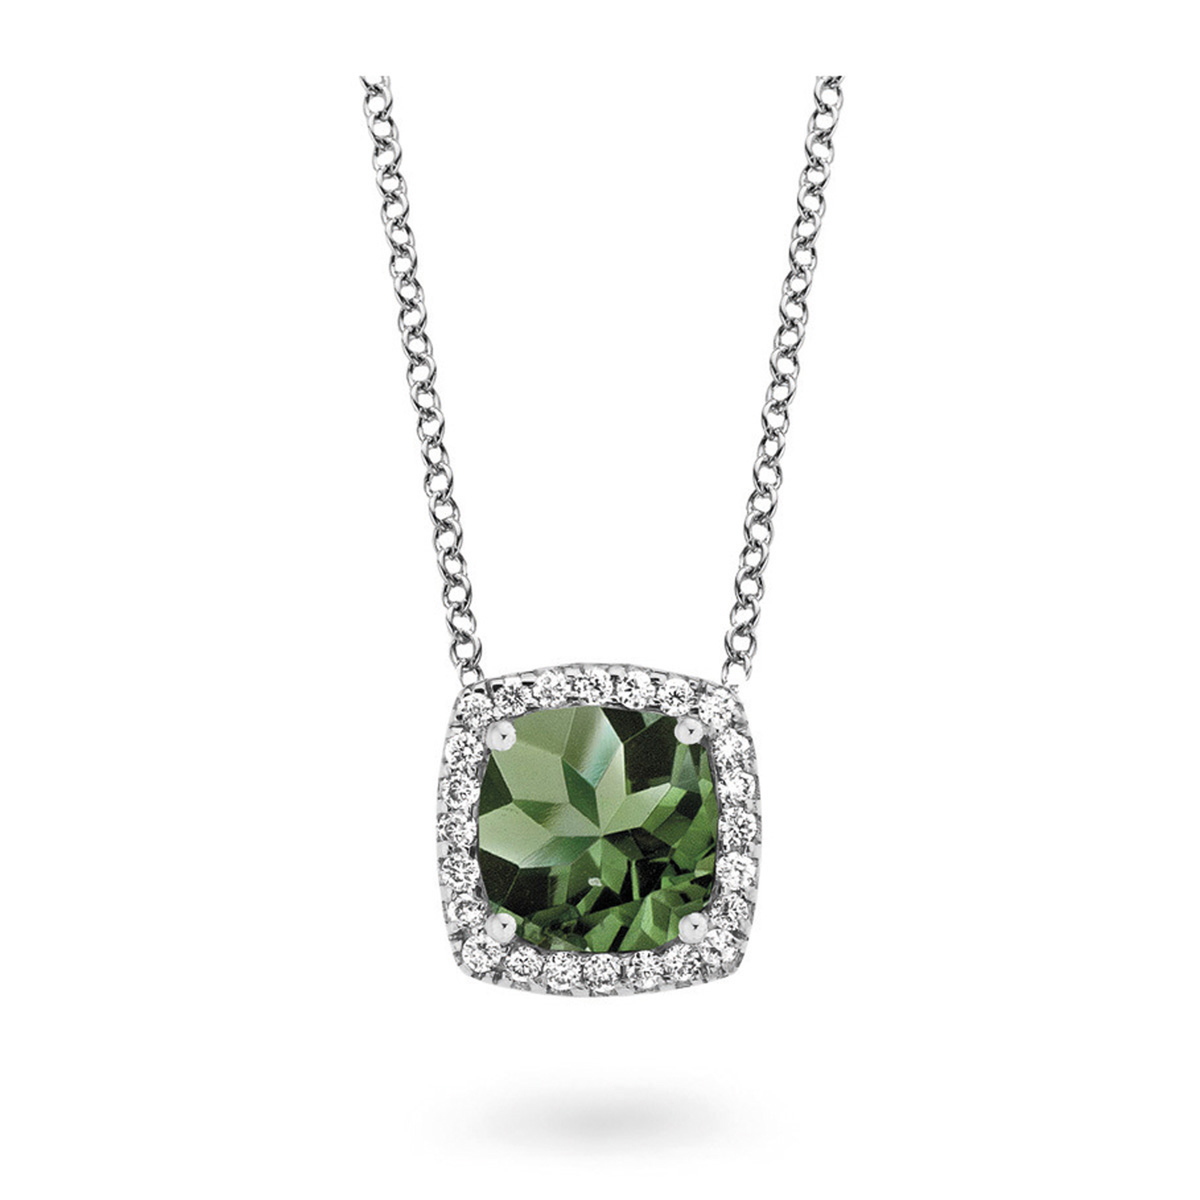 etna necklace in white gold